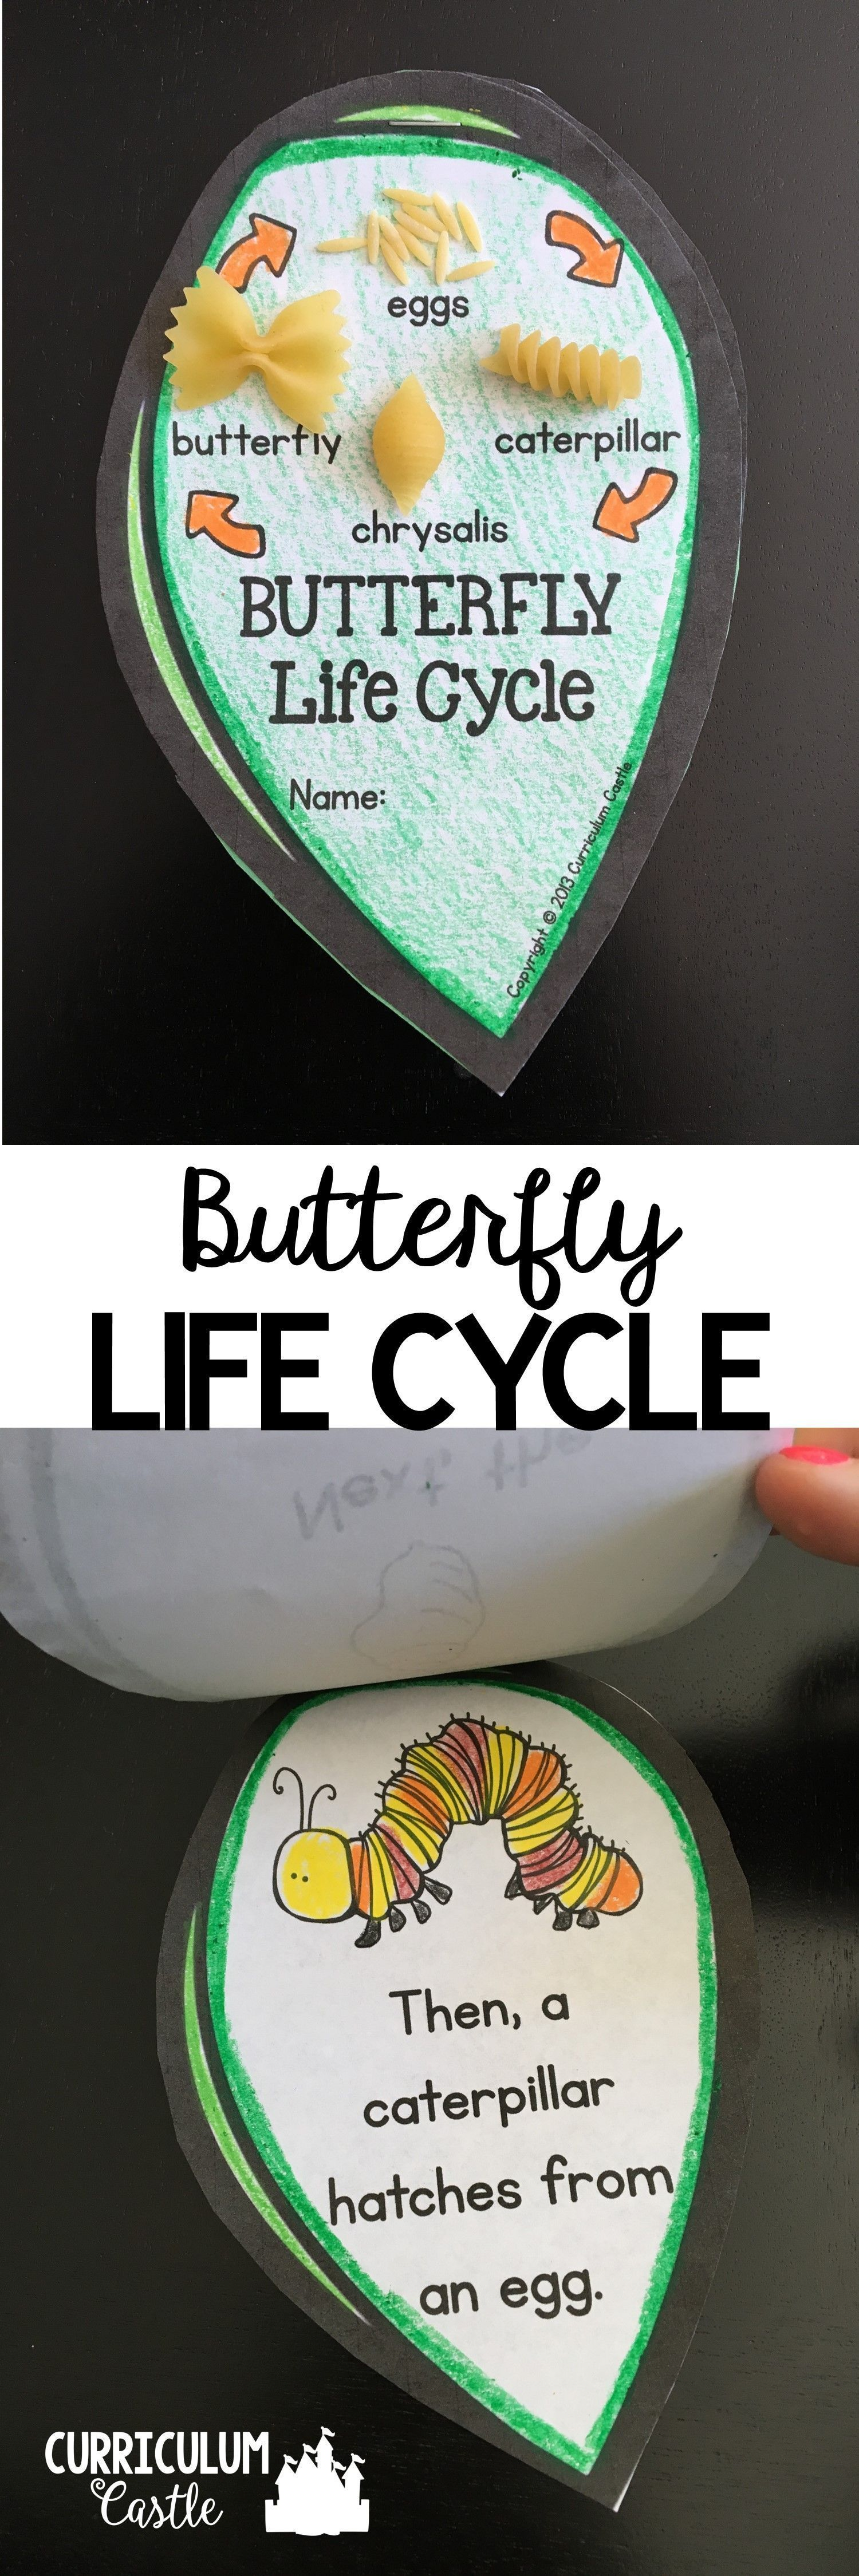 Butterfly Life Cycle Mini Leaf Book Makes An Adorable